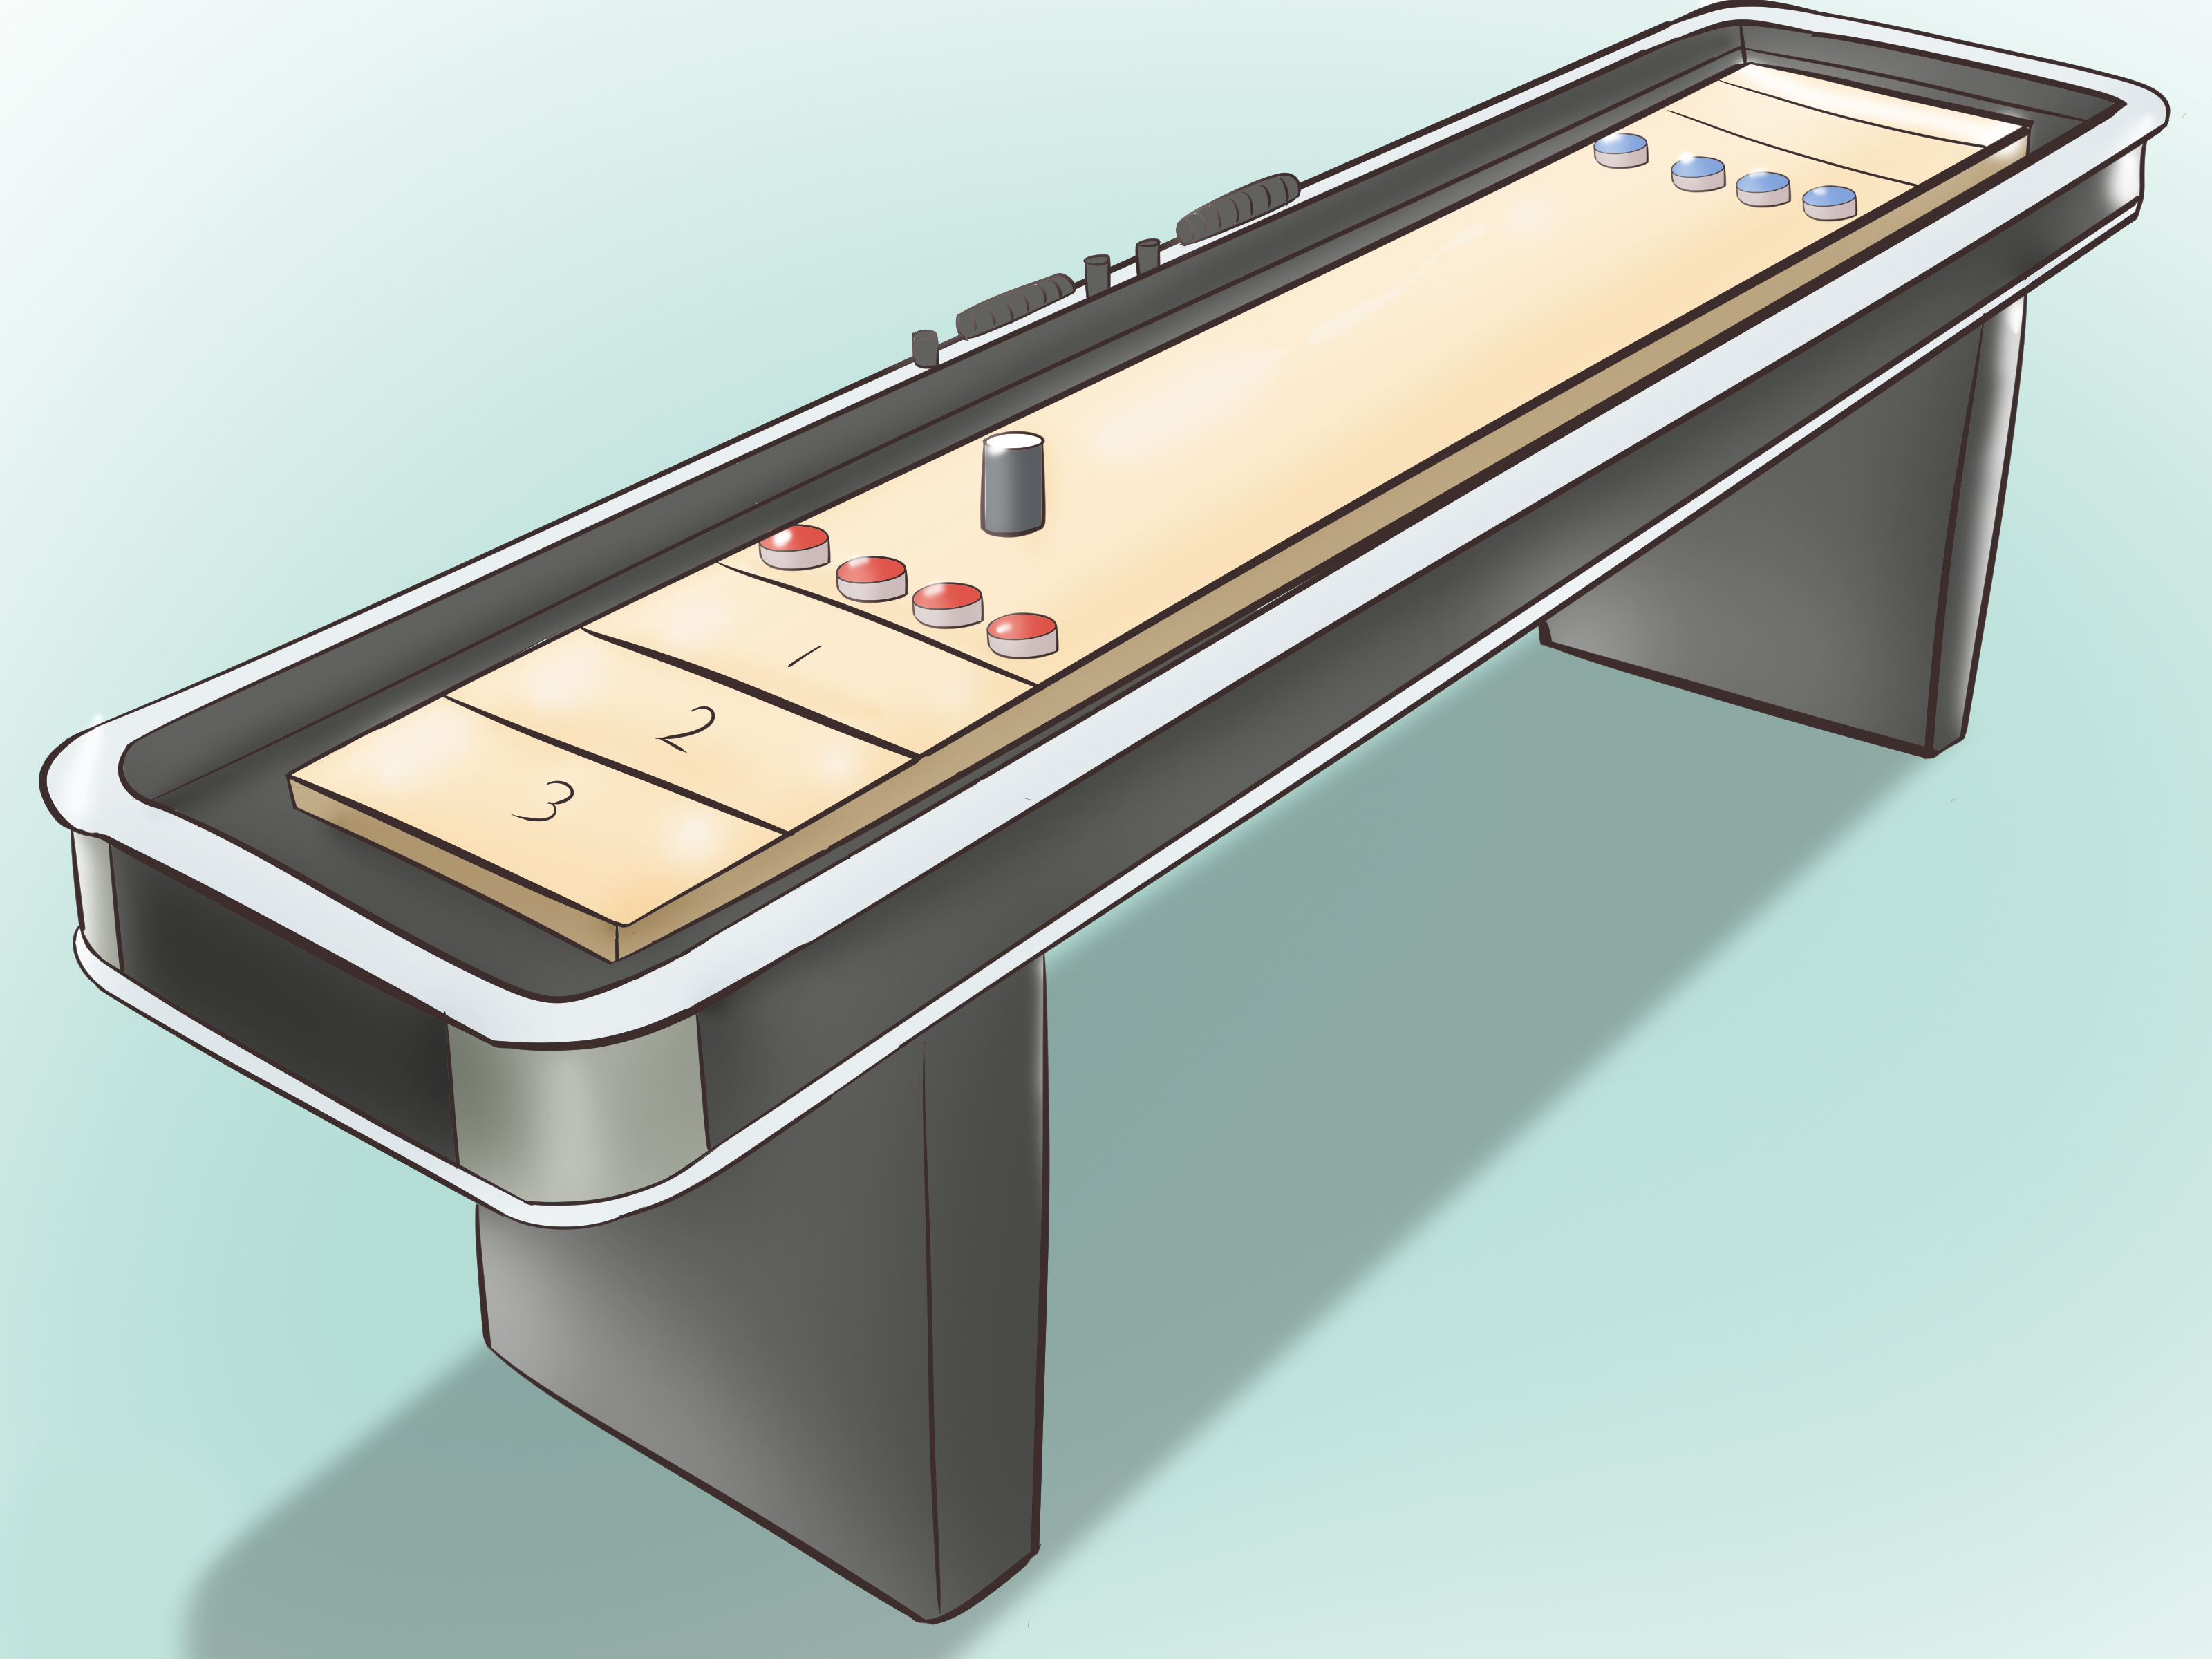 table shuffleboard dimensions diagram 1993 chevrolet c1500 wiring how to make a with pictures wikihow